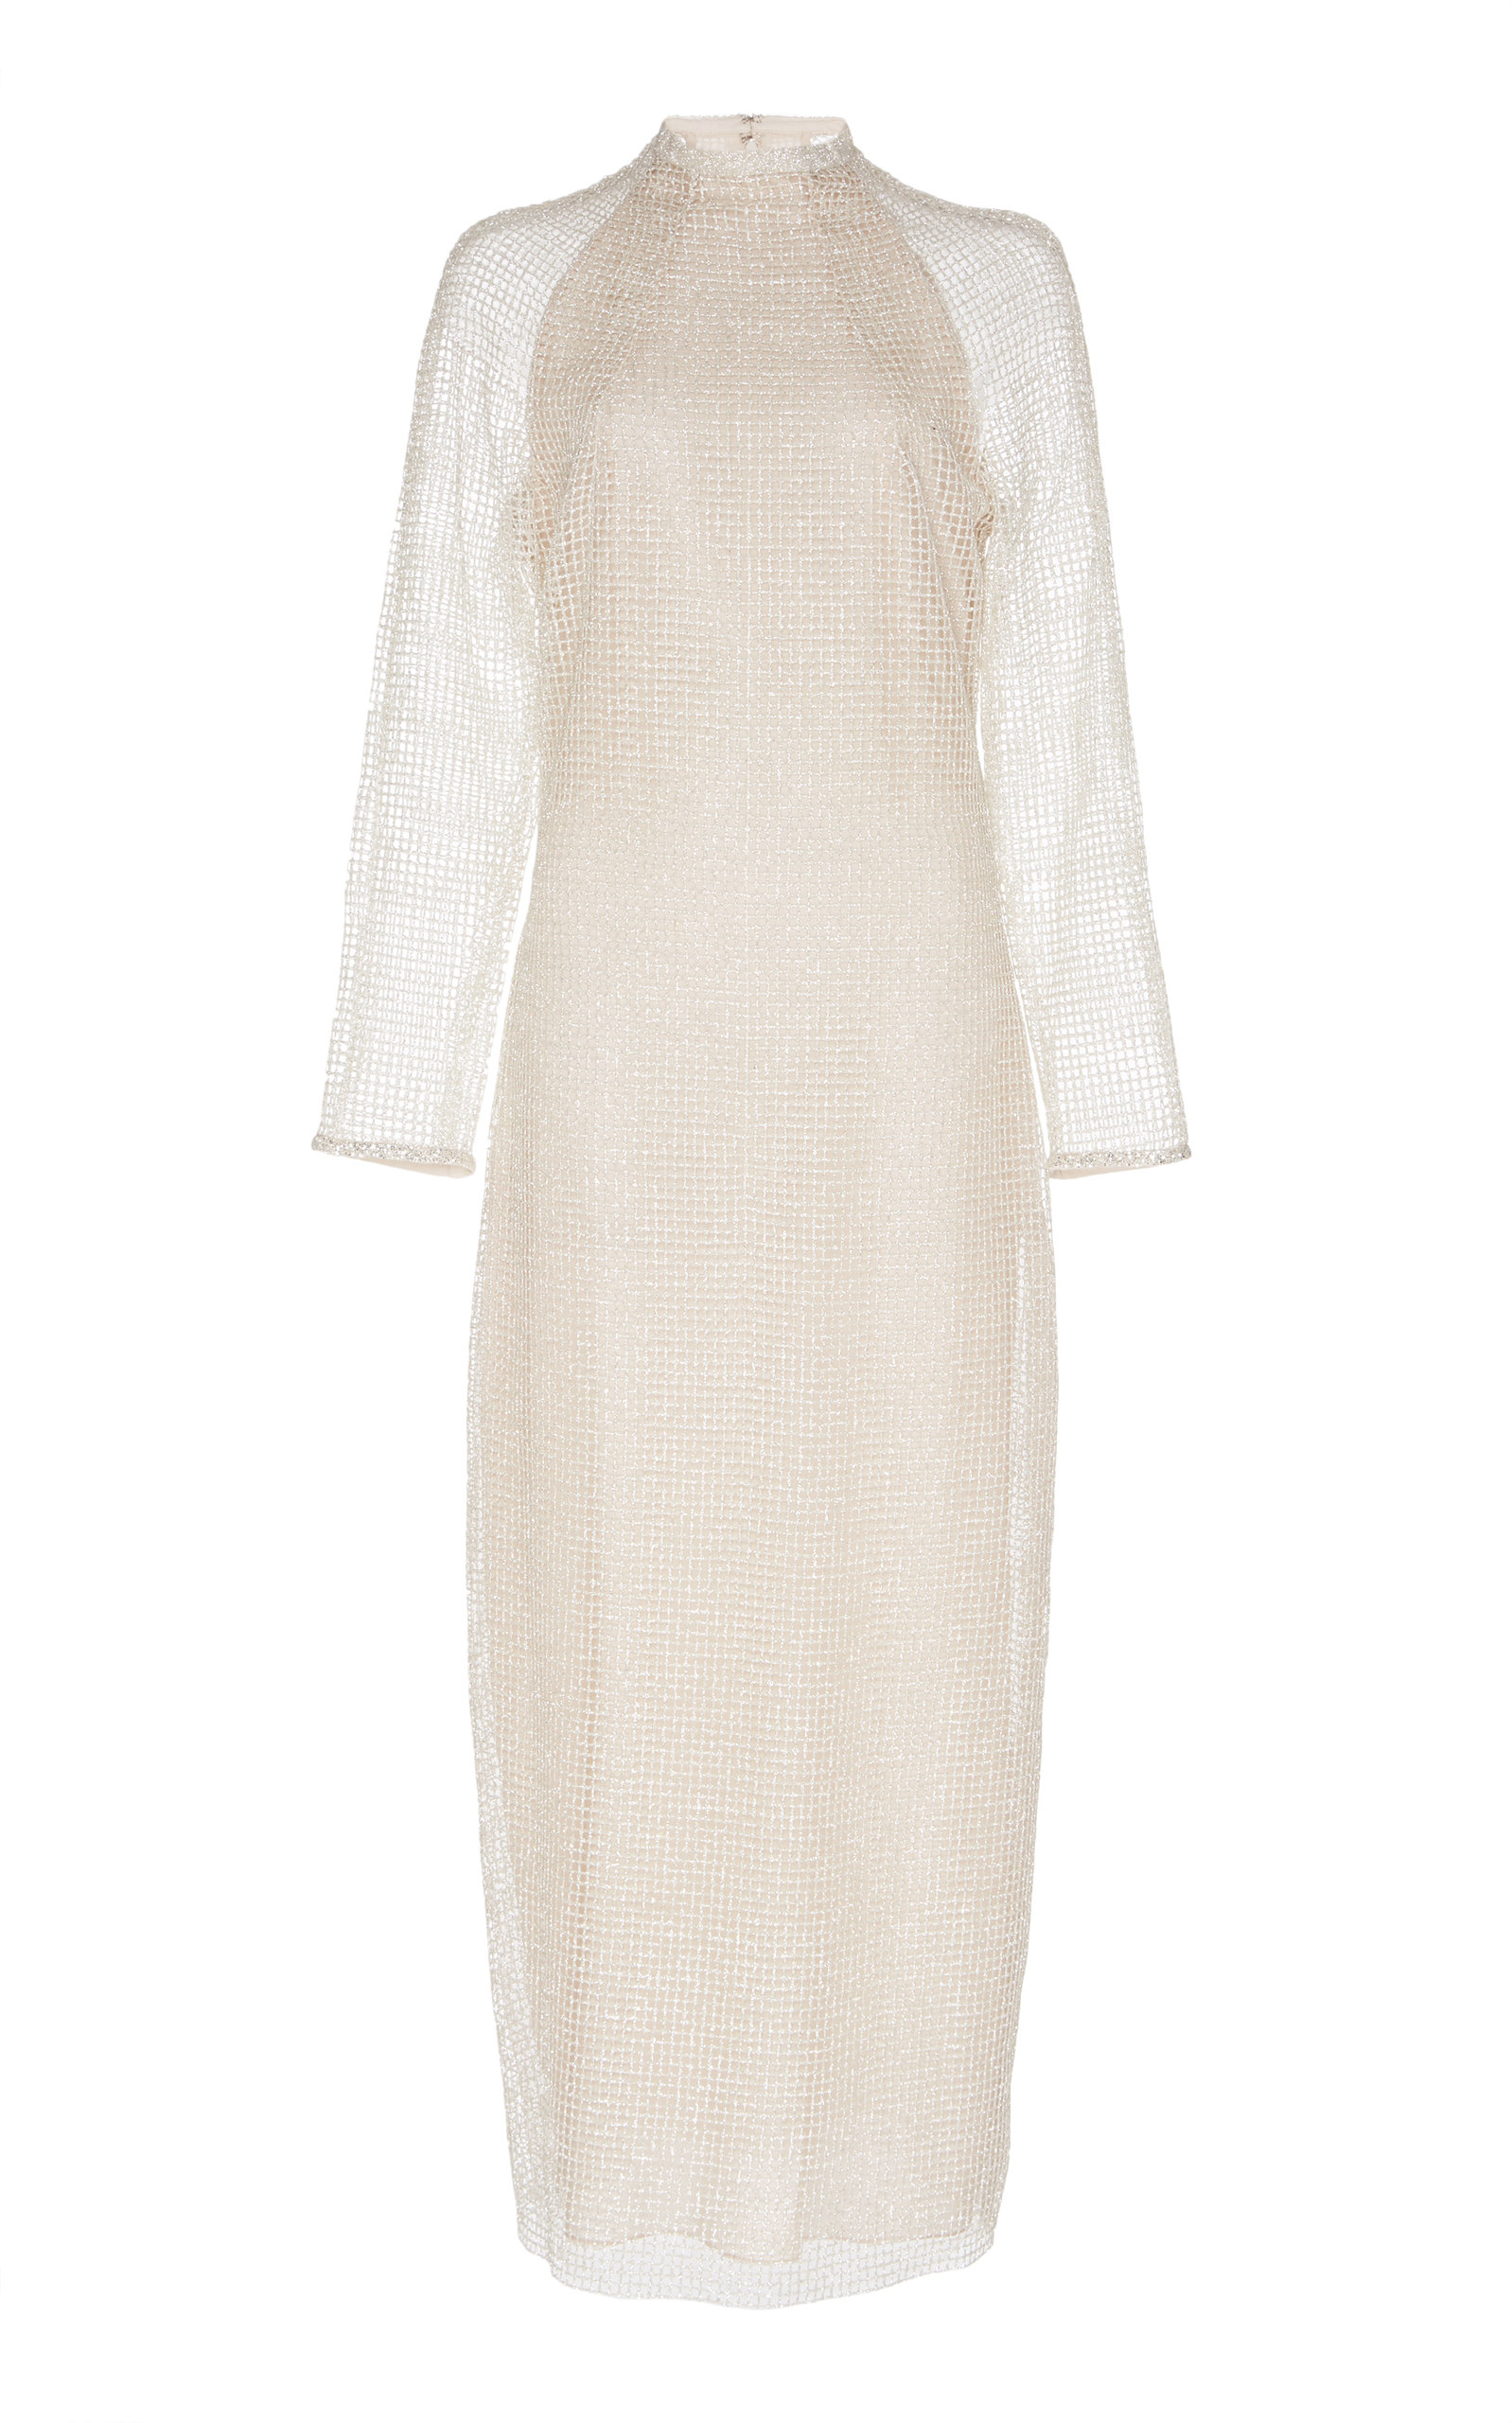 SANDRA MANSOUR Cheval Glitter Midi Dress in Neutral